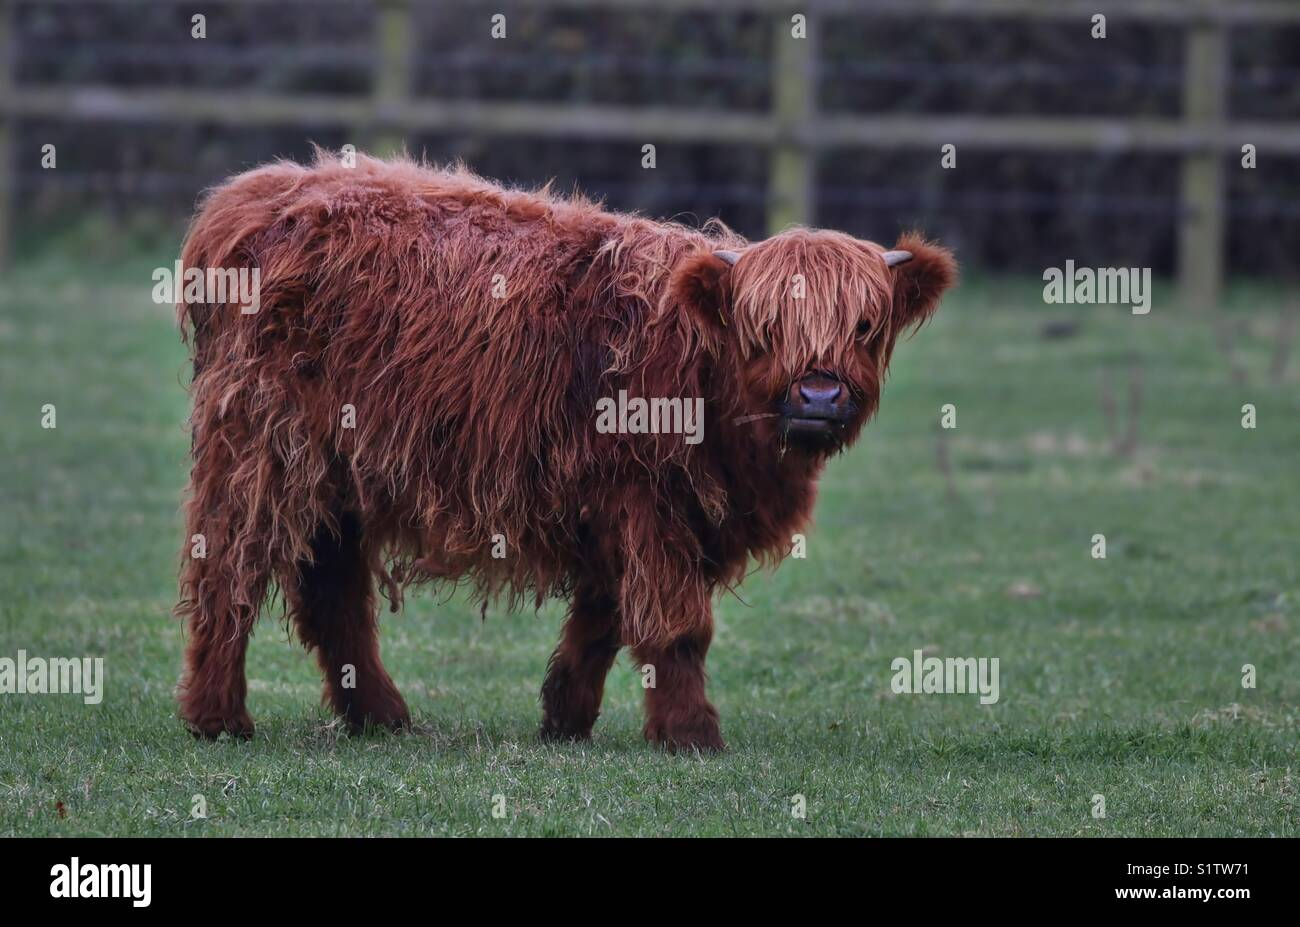 Longhorn Cow - Stock Image